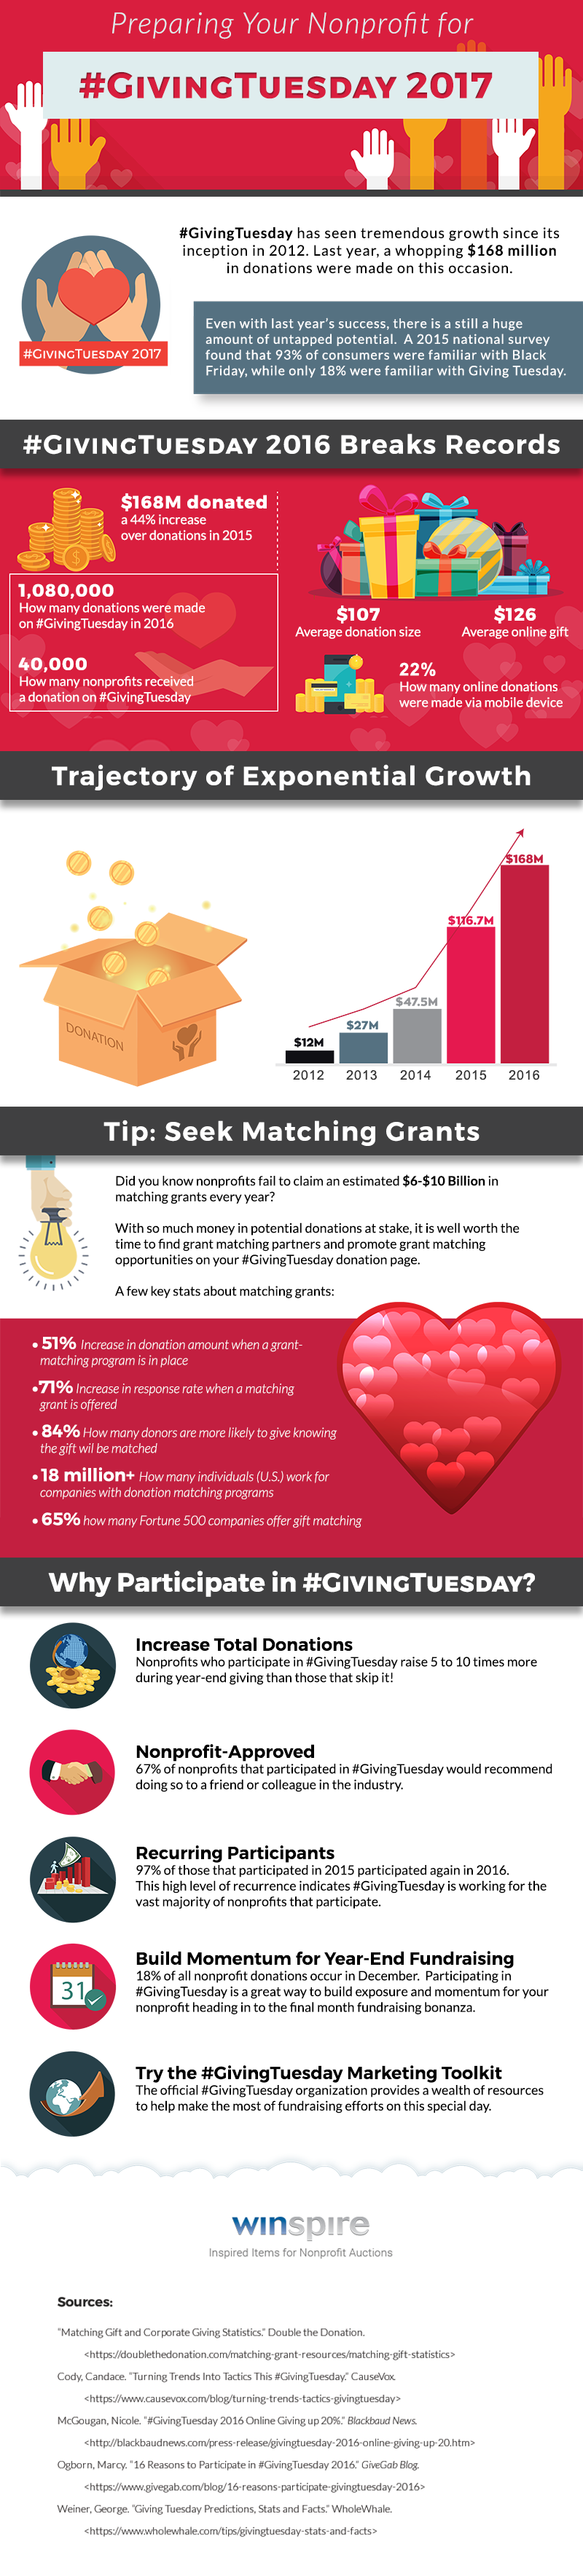 Winspire-Giving-Tuesday-2017-infographic.png